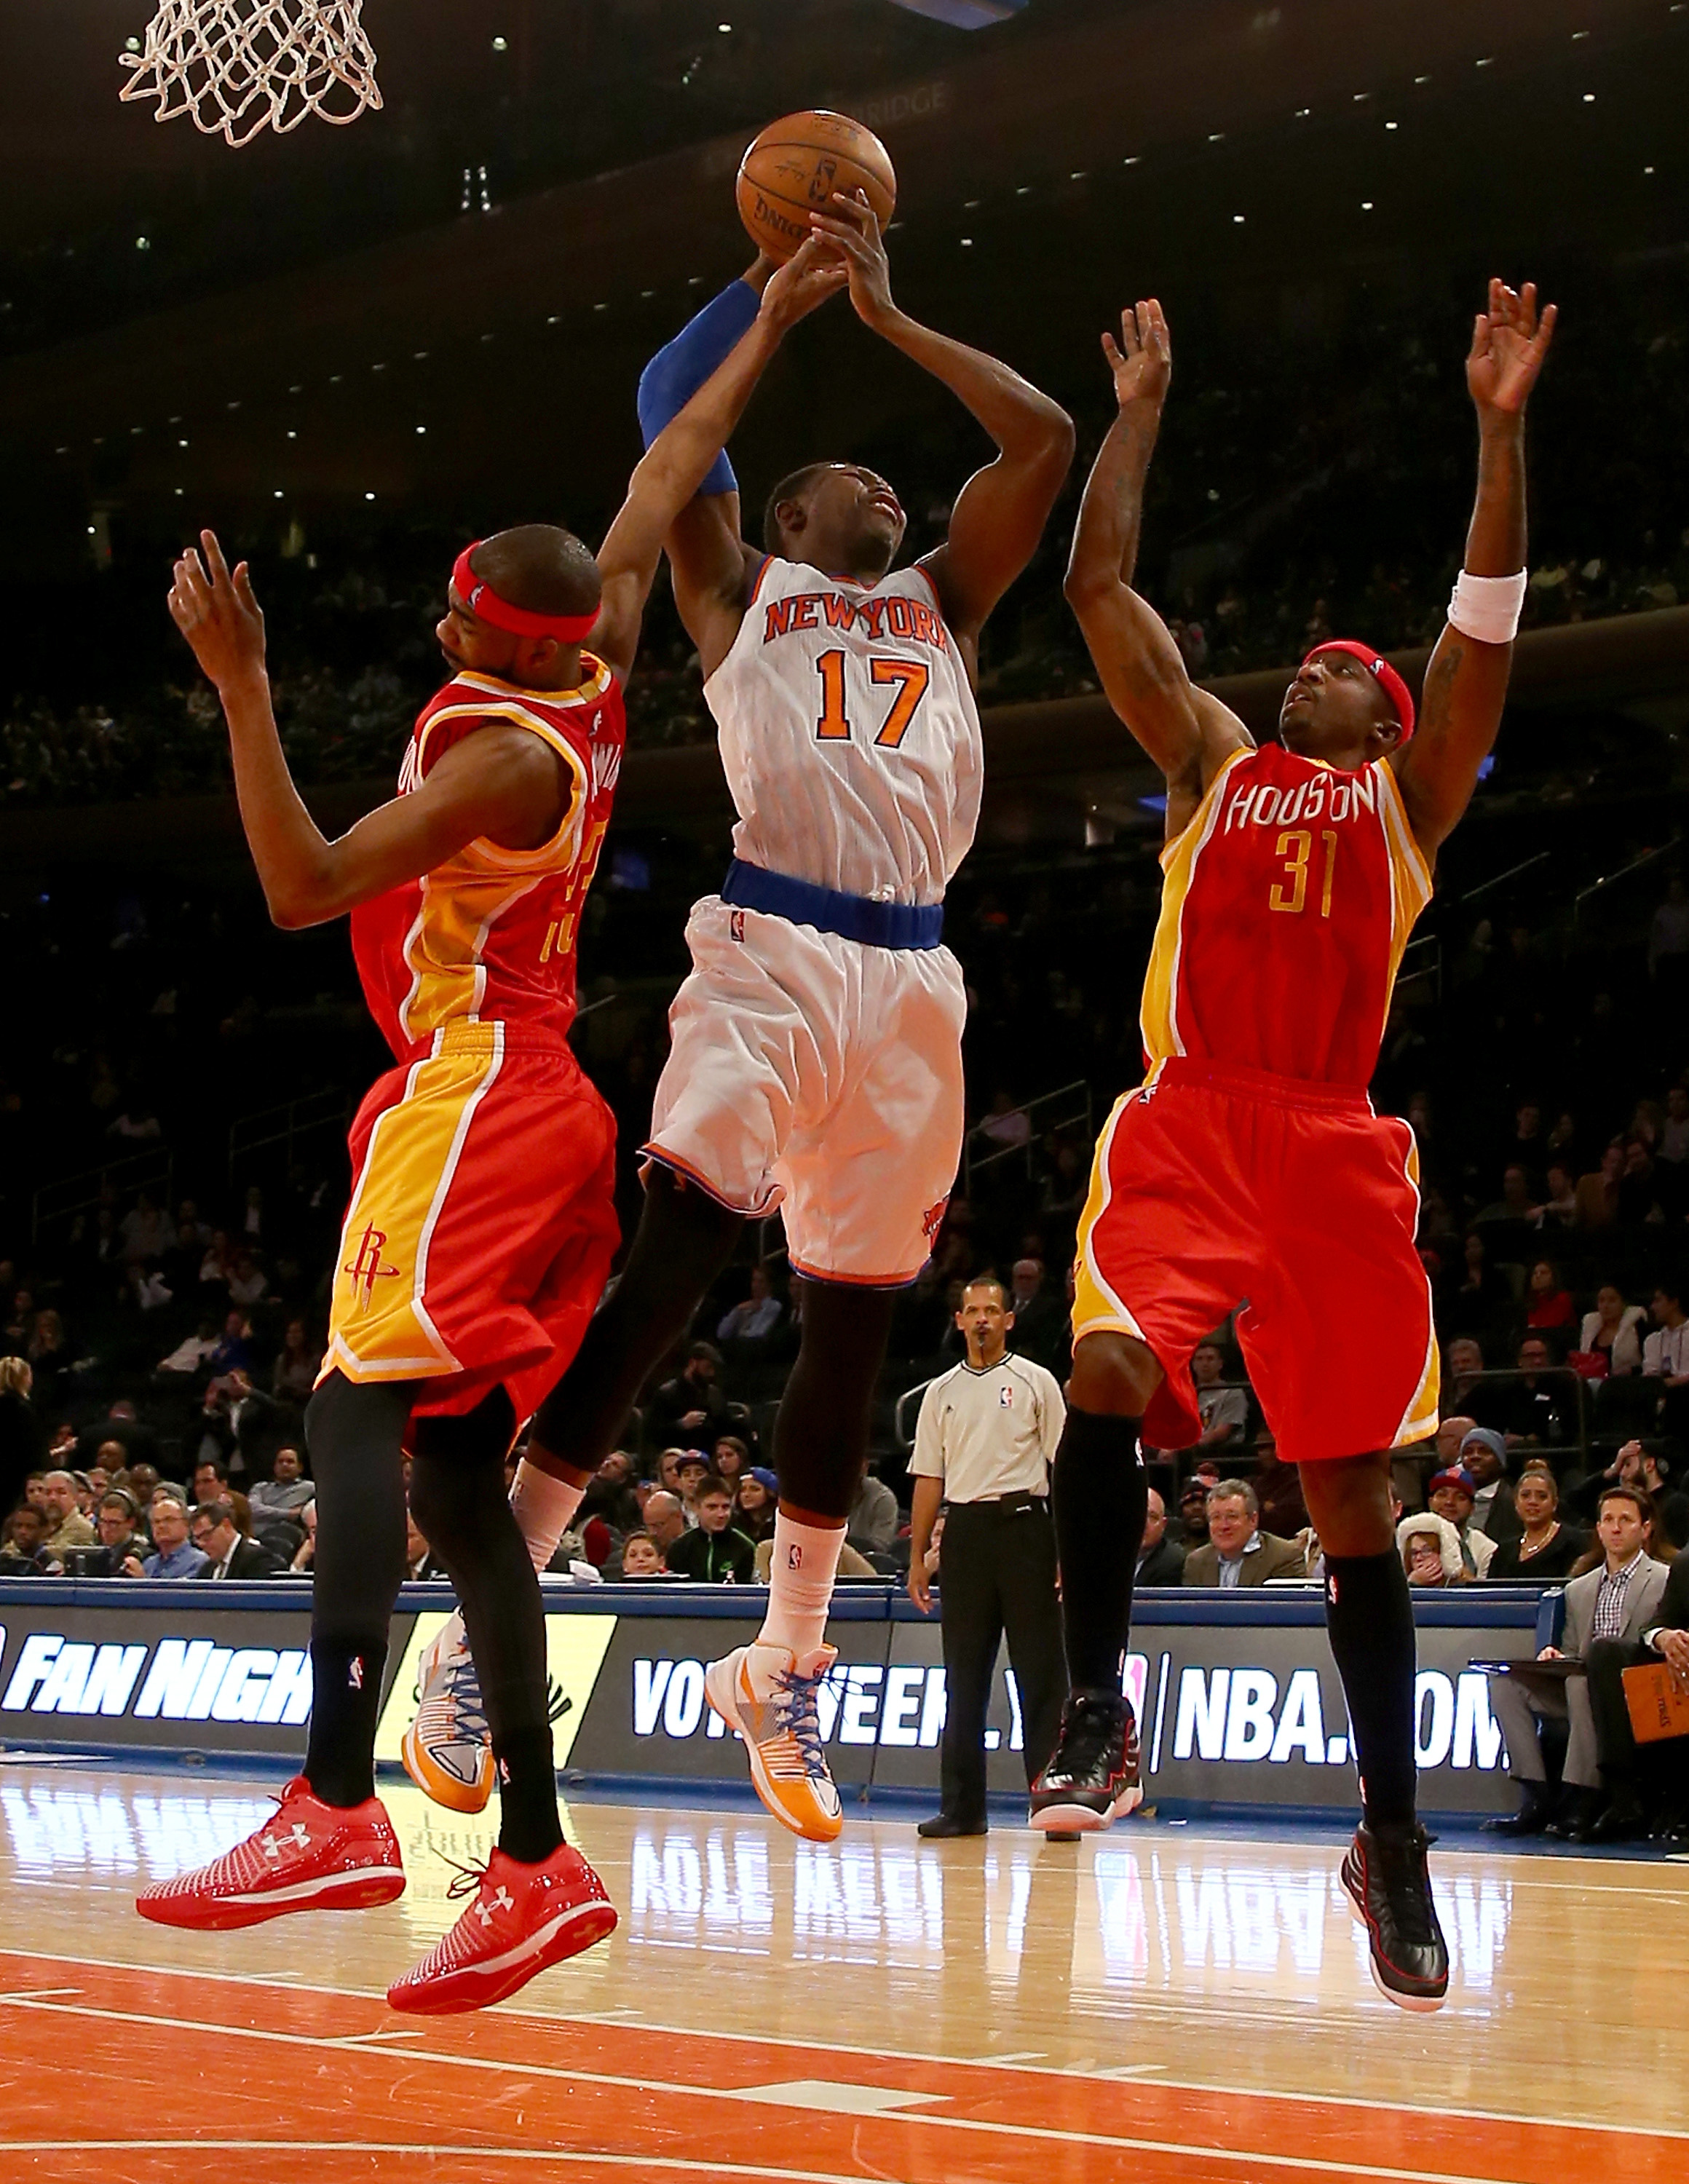 The Houston Rockets defeated the New York Knicks 120-96 at Madison Square Garden on January 8, 2015 in New York City.